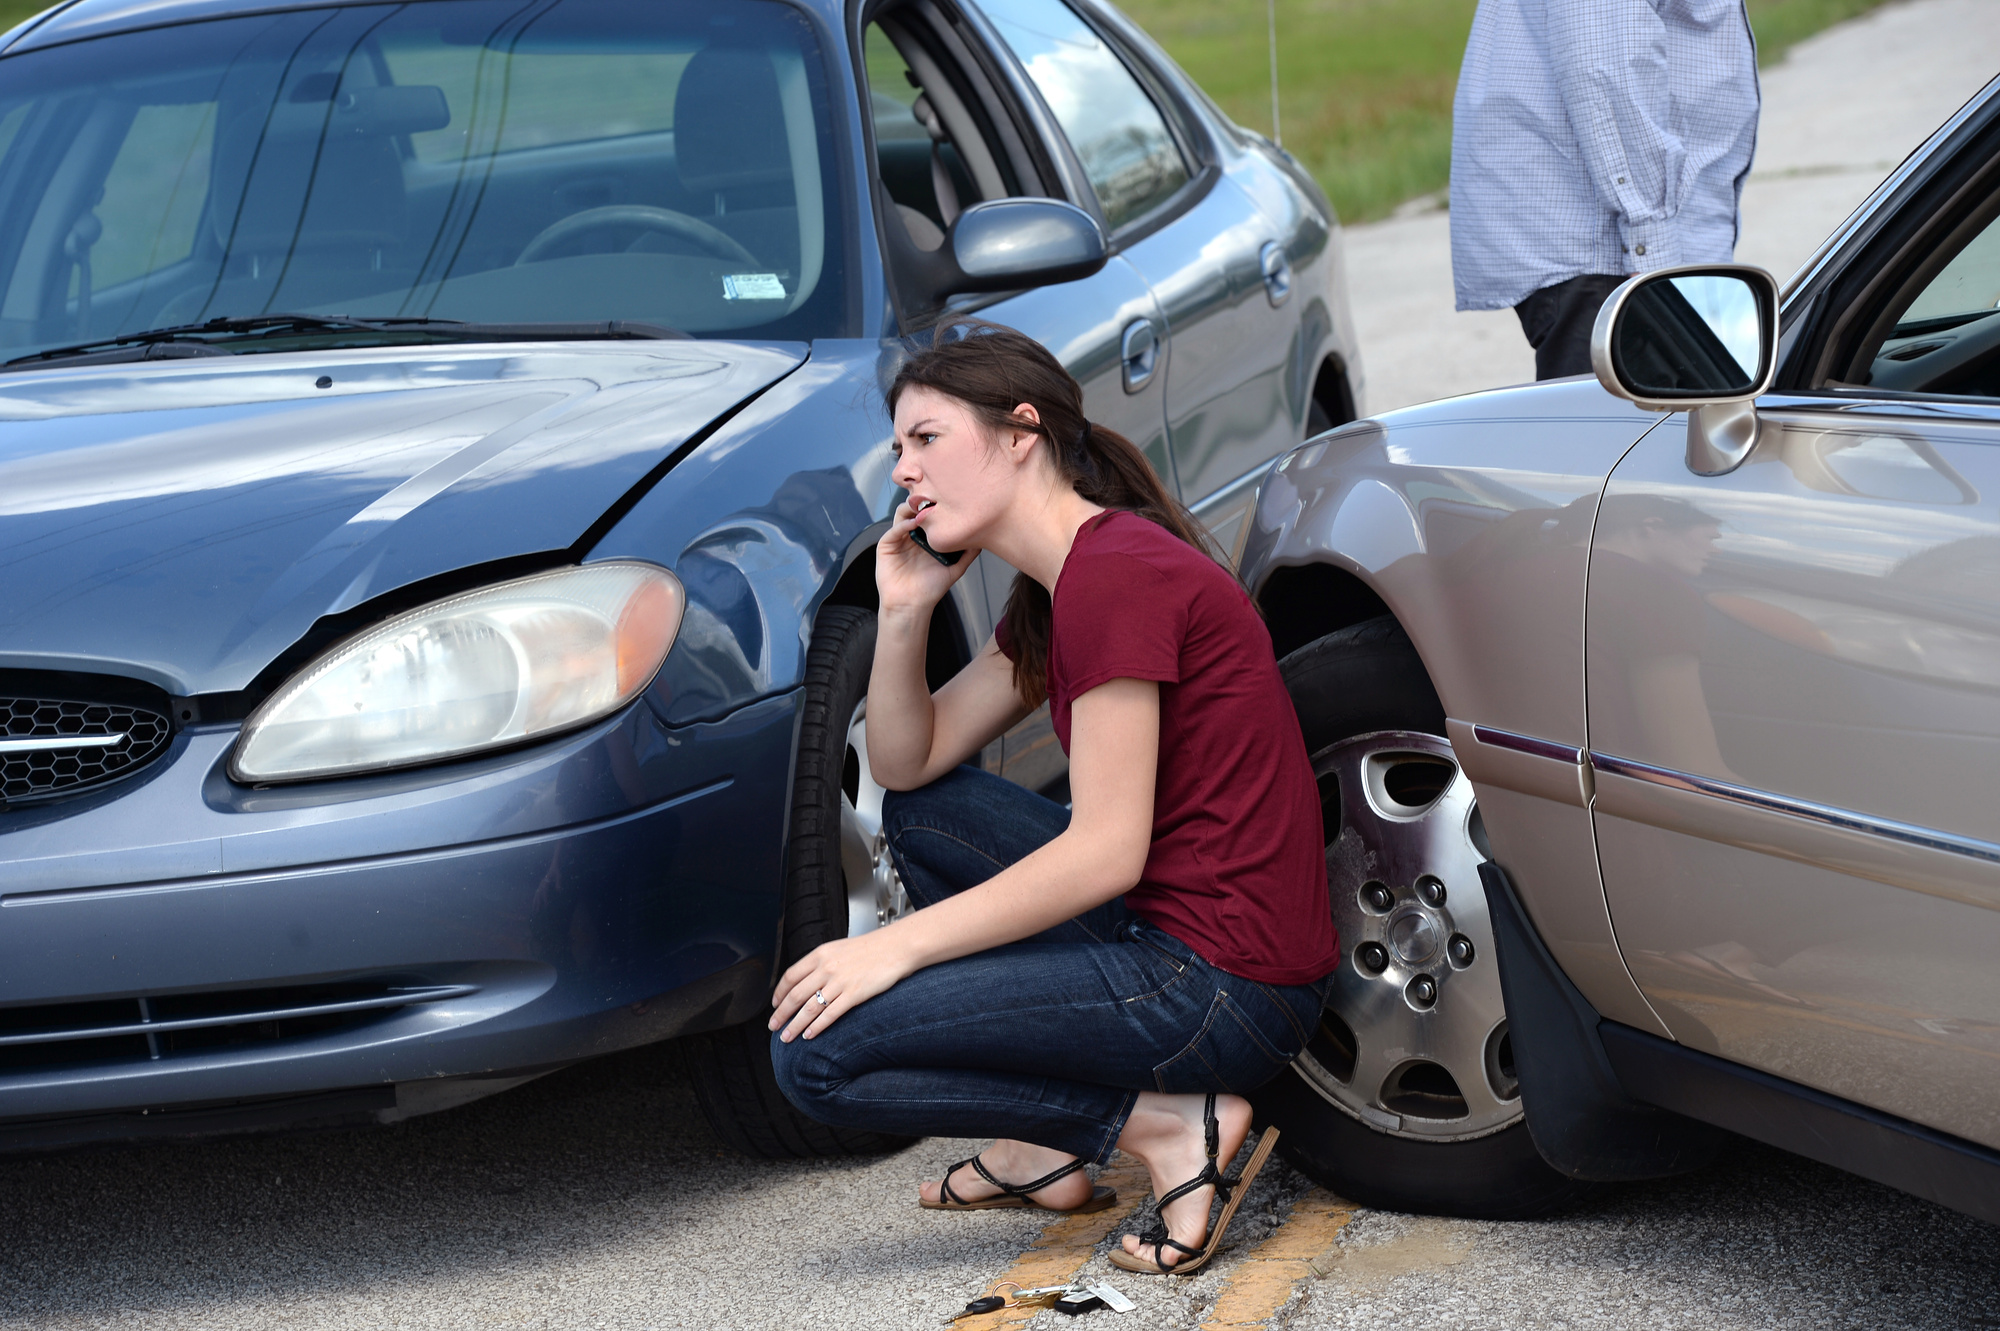 Have you witnessed an auto accident? Then make sure you follow these steps after witnessing an accident to ensure you complete your civic duty.